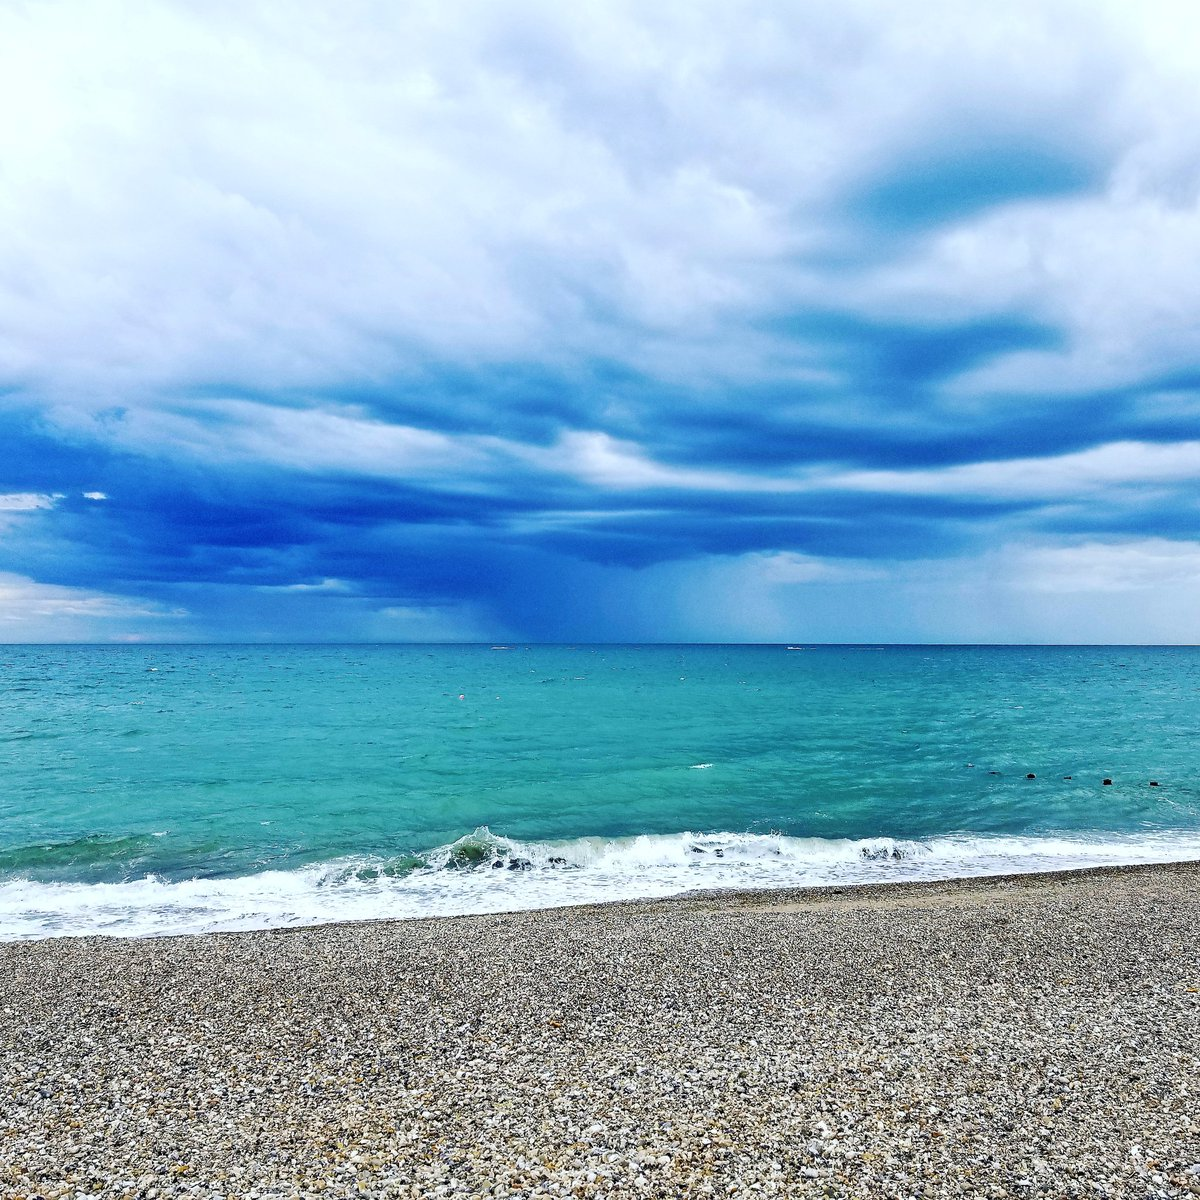 Incoming Storm, Selsey #beach #selsey #nature #uk #storm #naturephotography #natureperfection #clouds #sky #summer #sea #weatherpic.twitter.com/ndMXjEyGFs